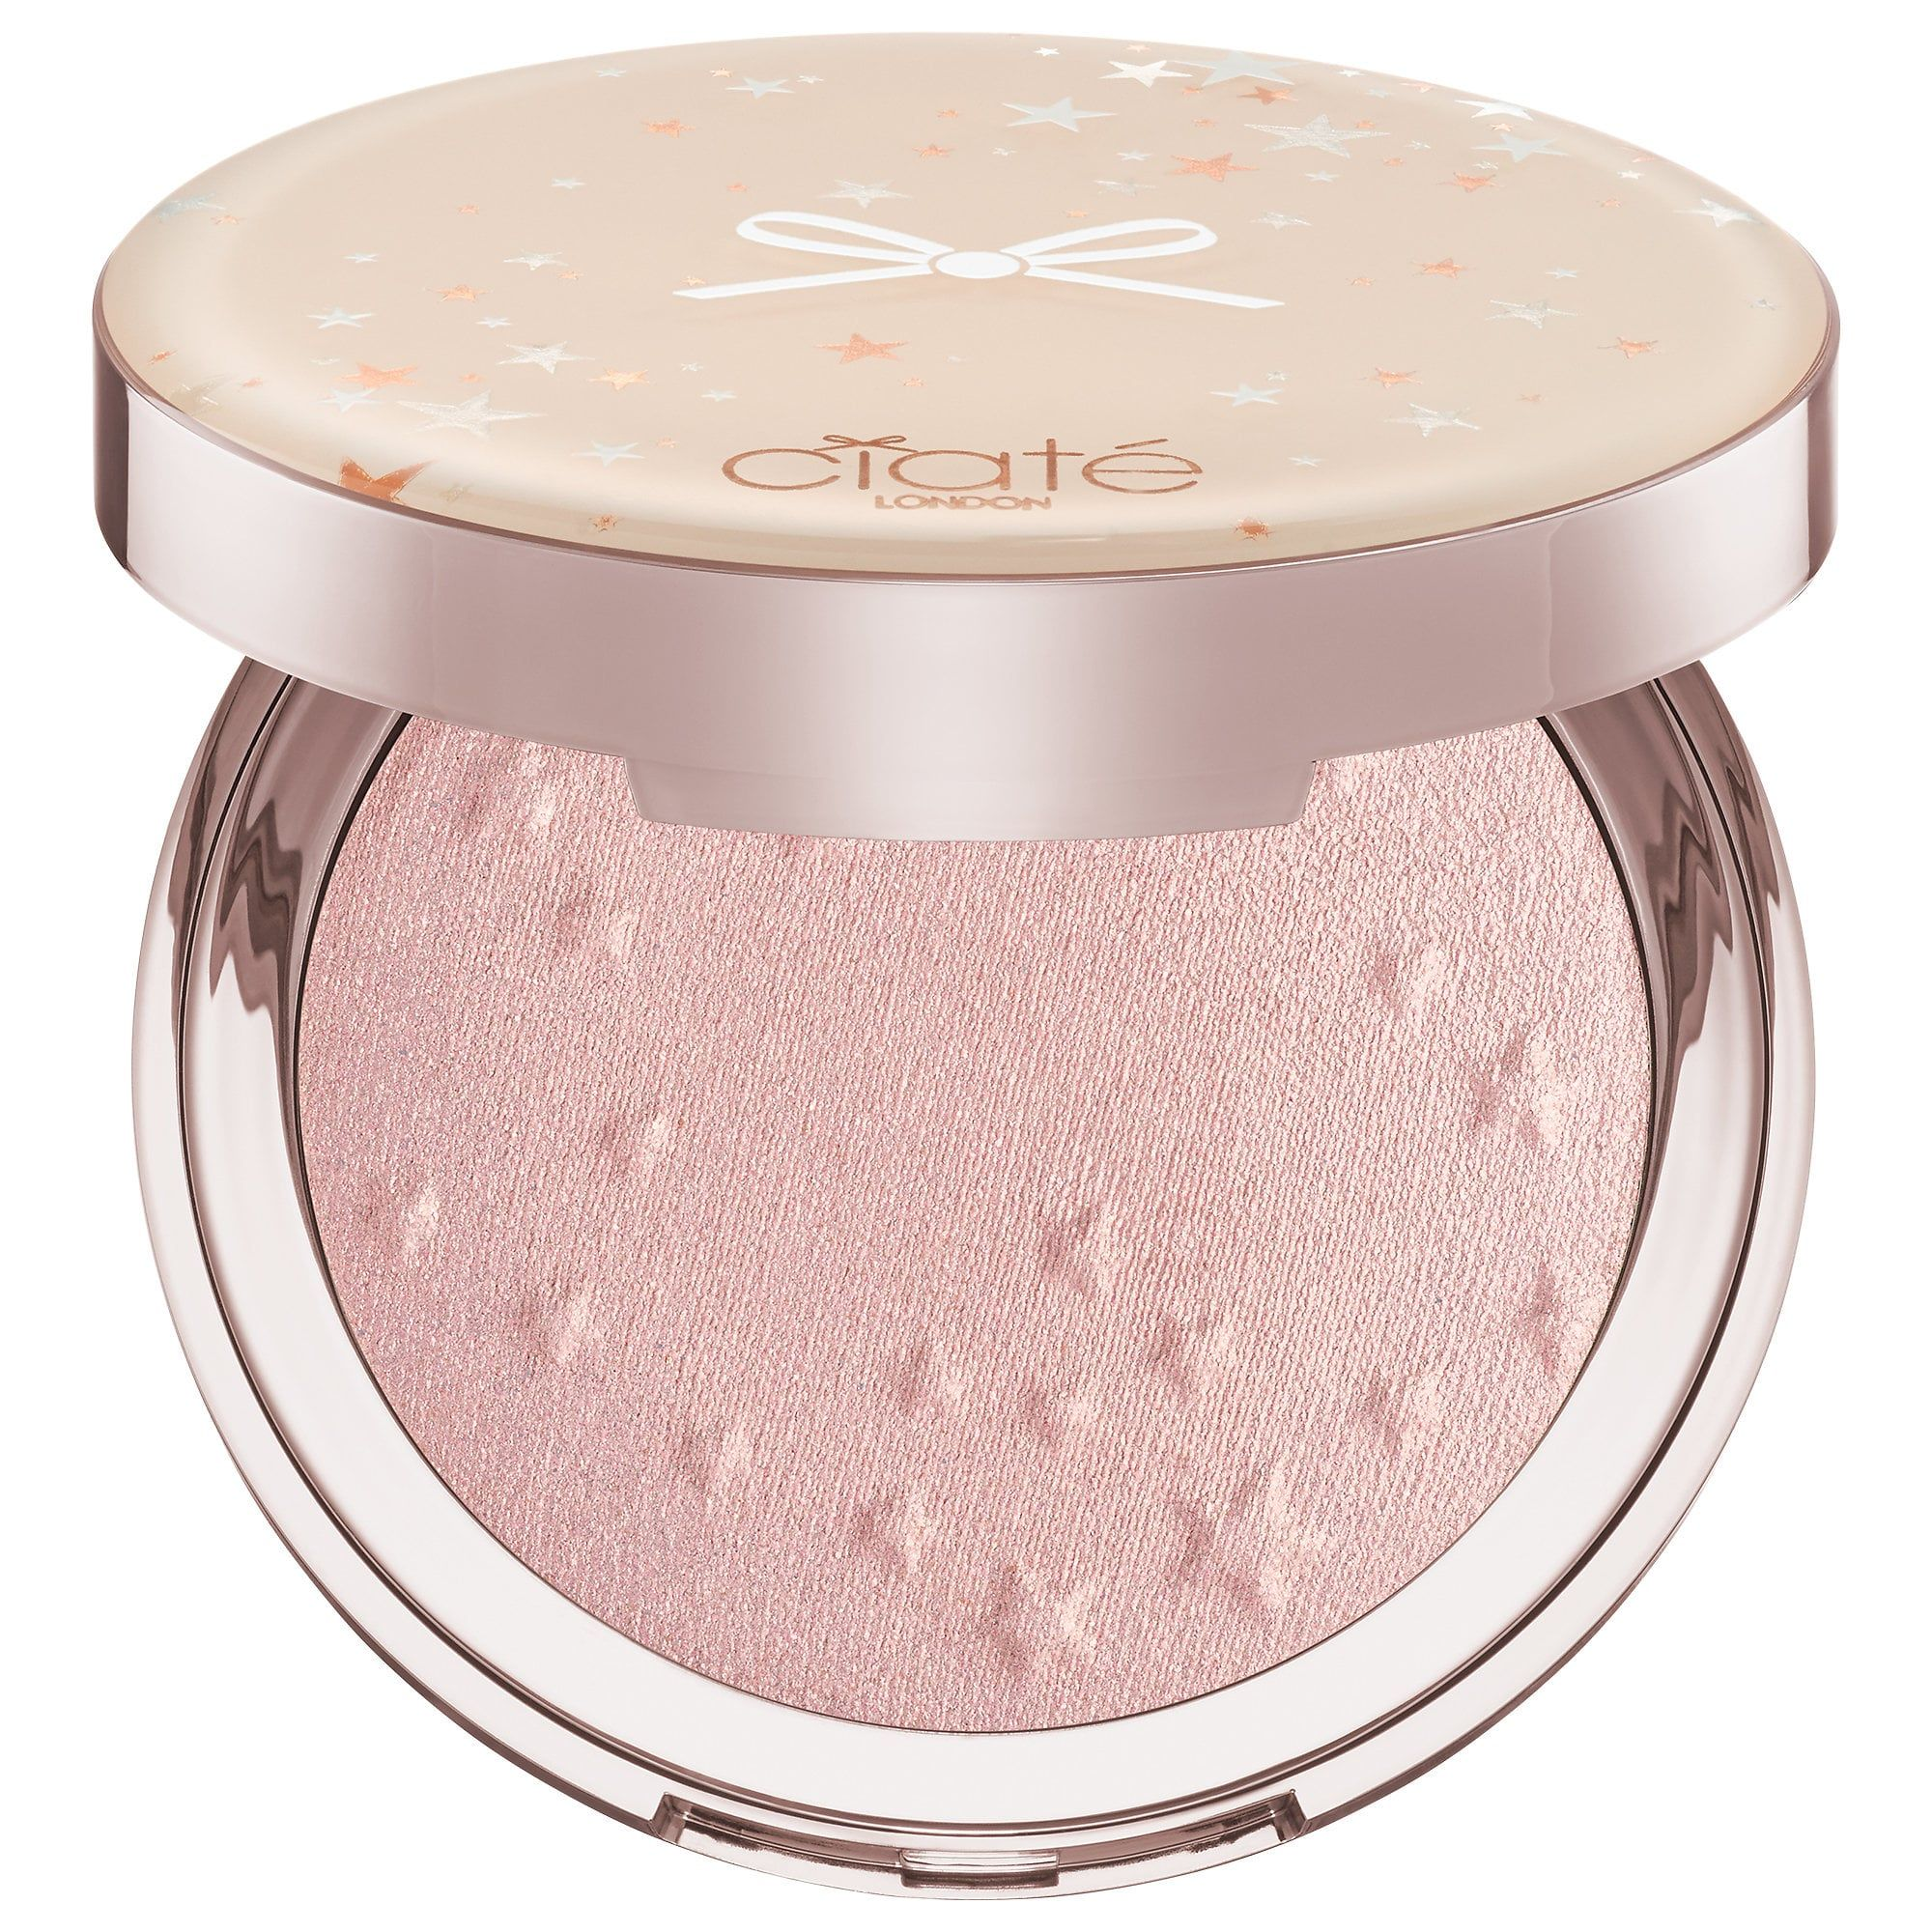 Glow To Highlighter Ciate London Sephora In 2020 Ciate Ciate London Faces Cosmetics